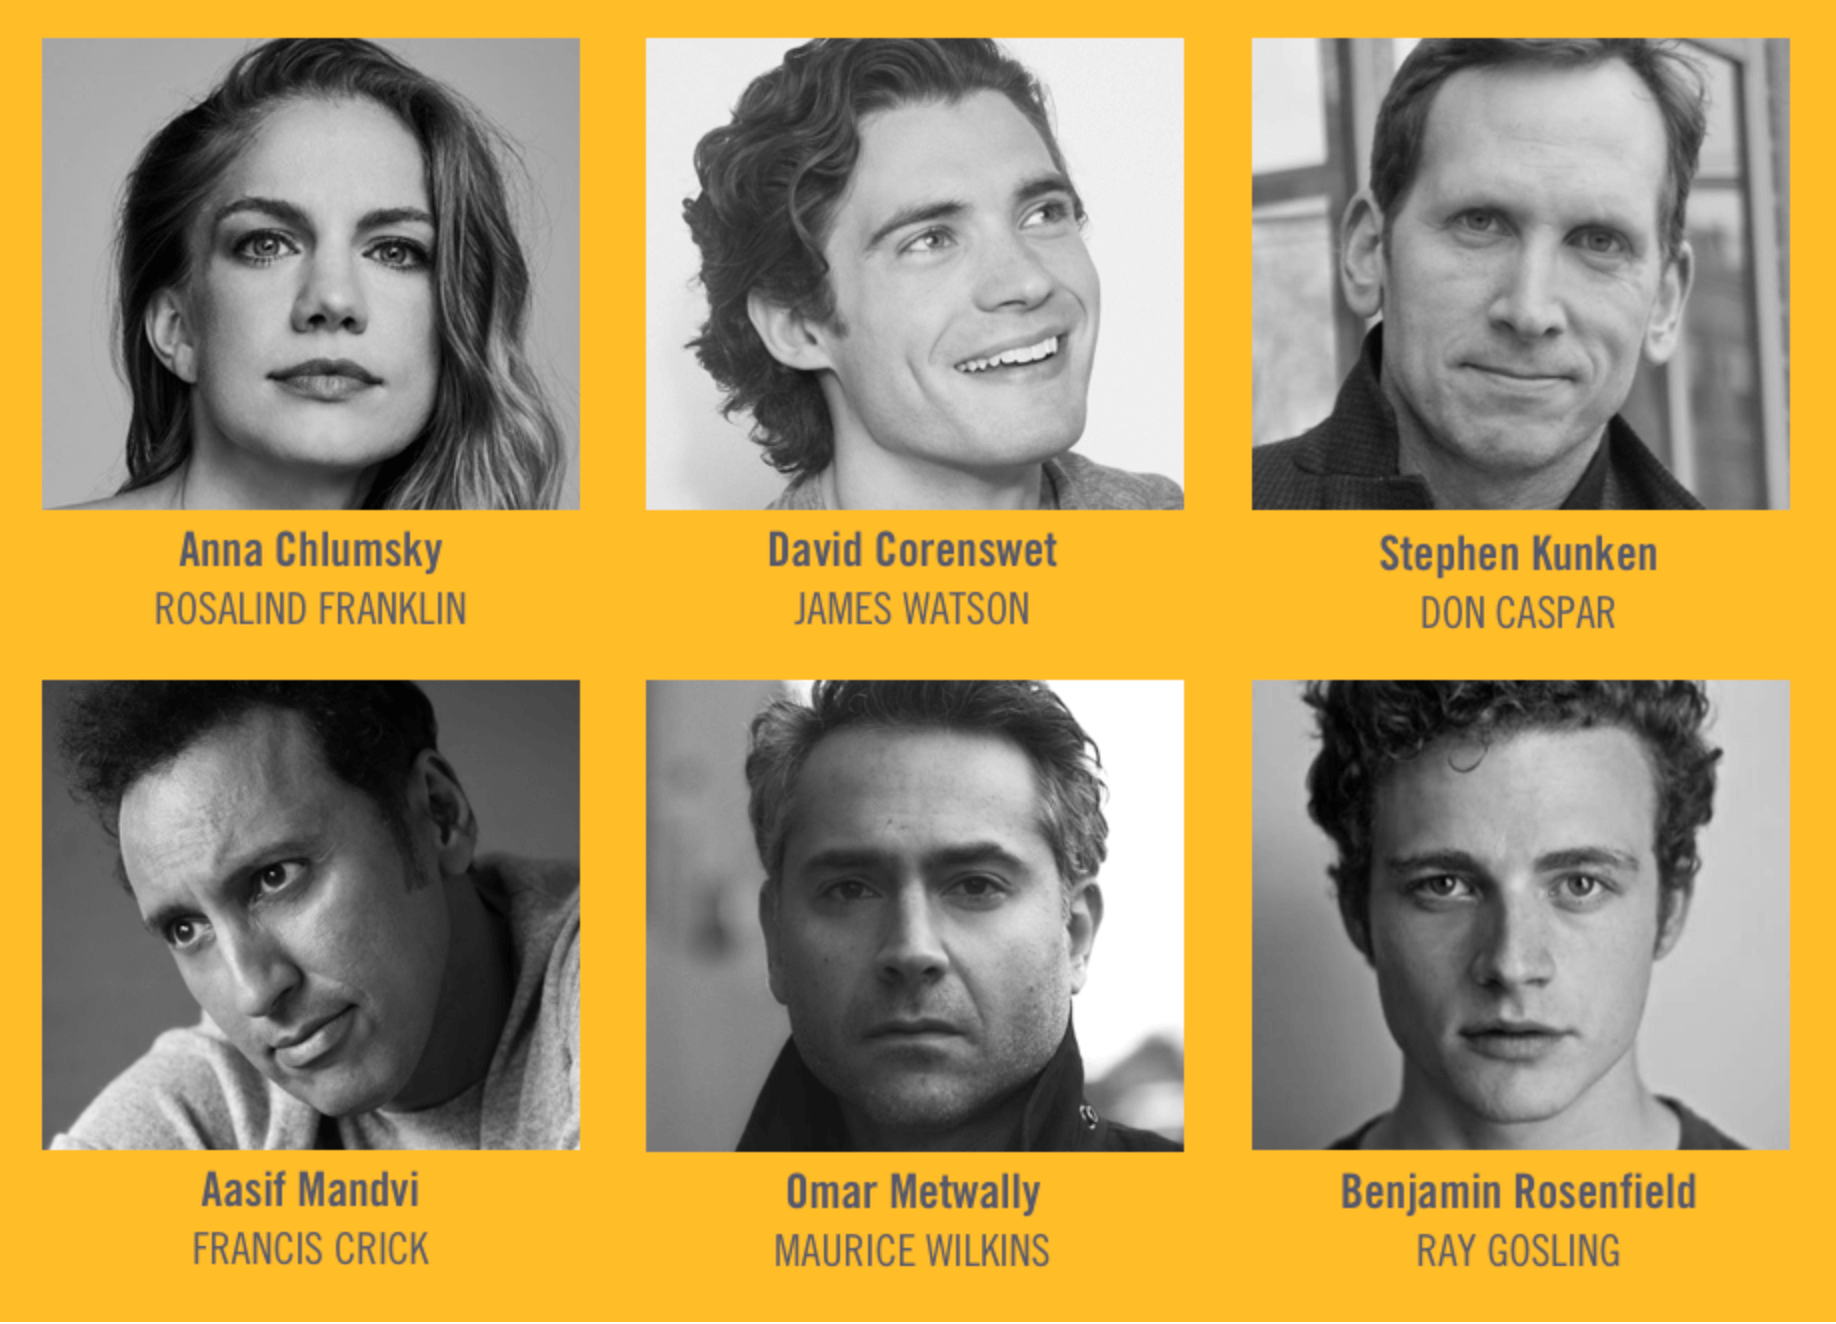 The cast of the Audible/Williamstown Theatre Festival production: black and white square headshots on the orange background.